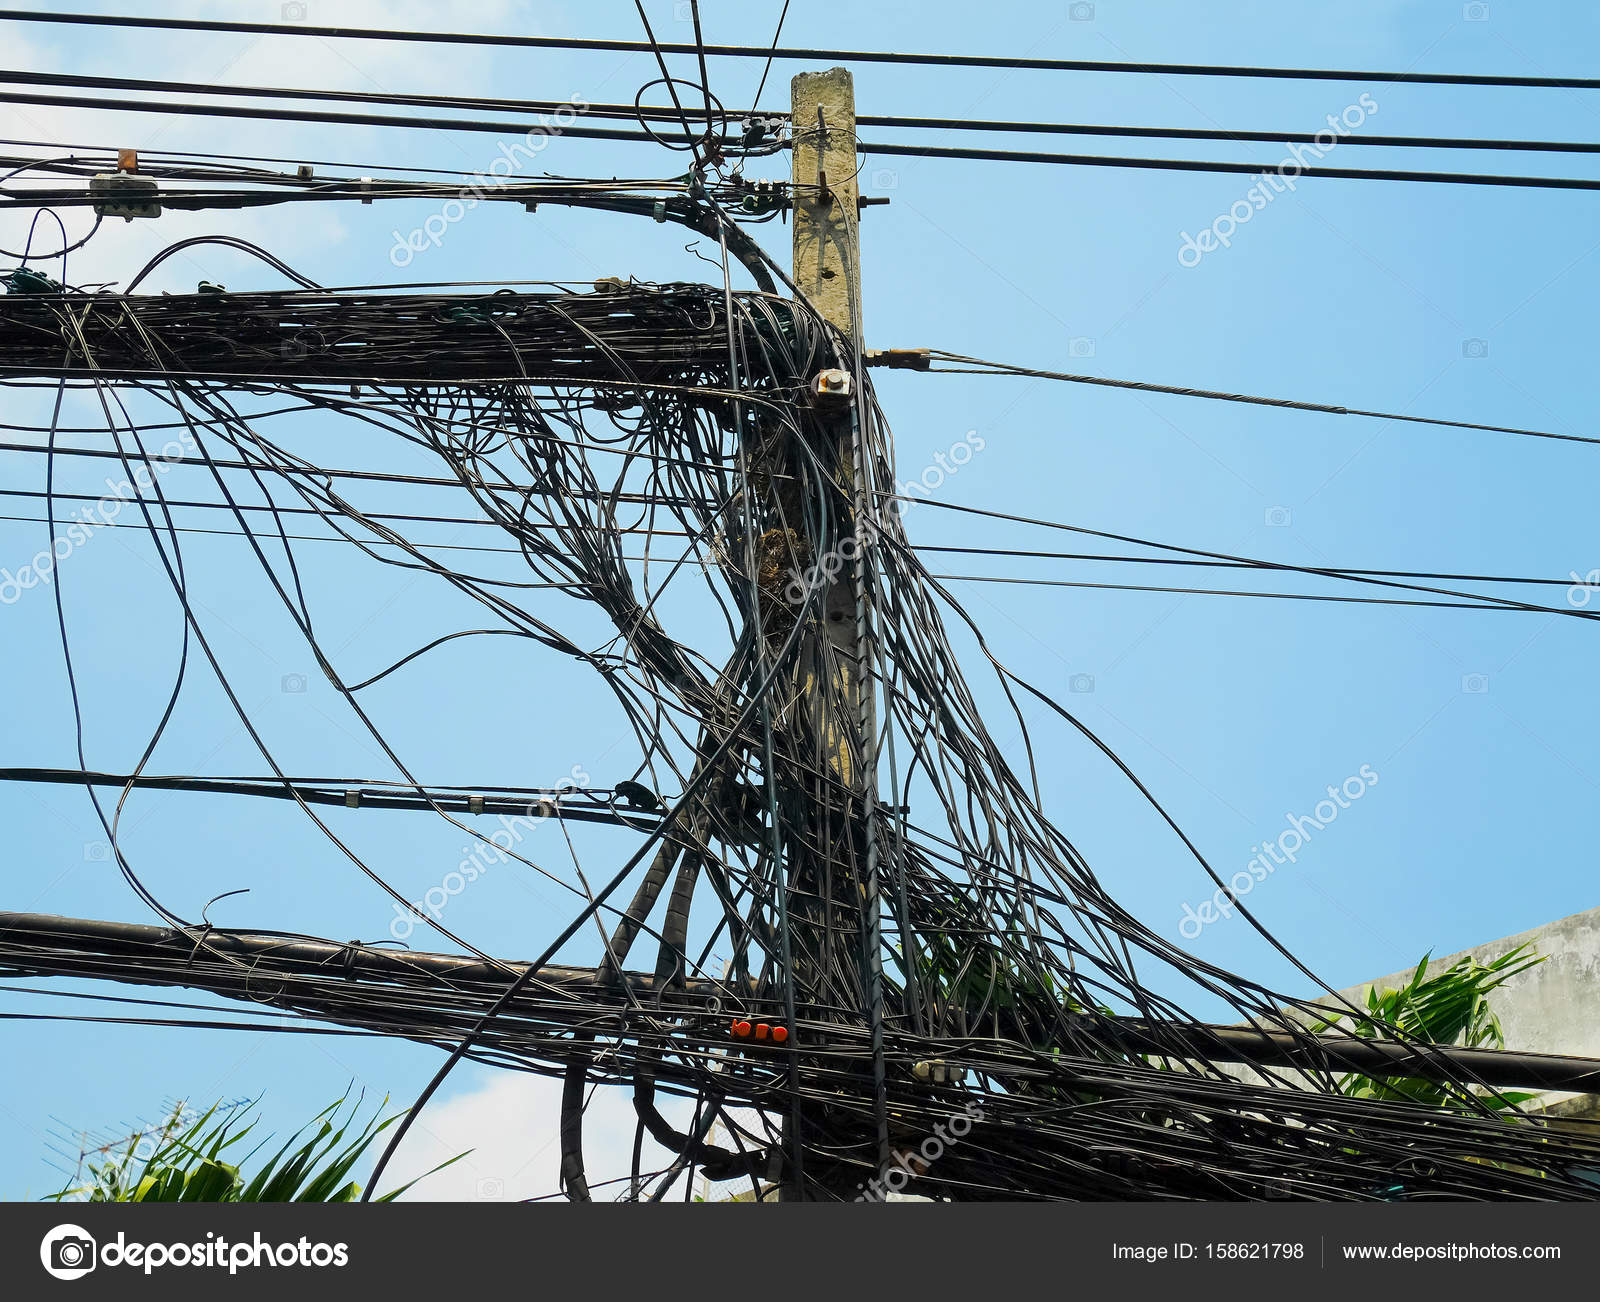 hight resolution of utility pole supporting messy wires stock photo